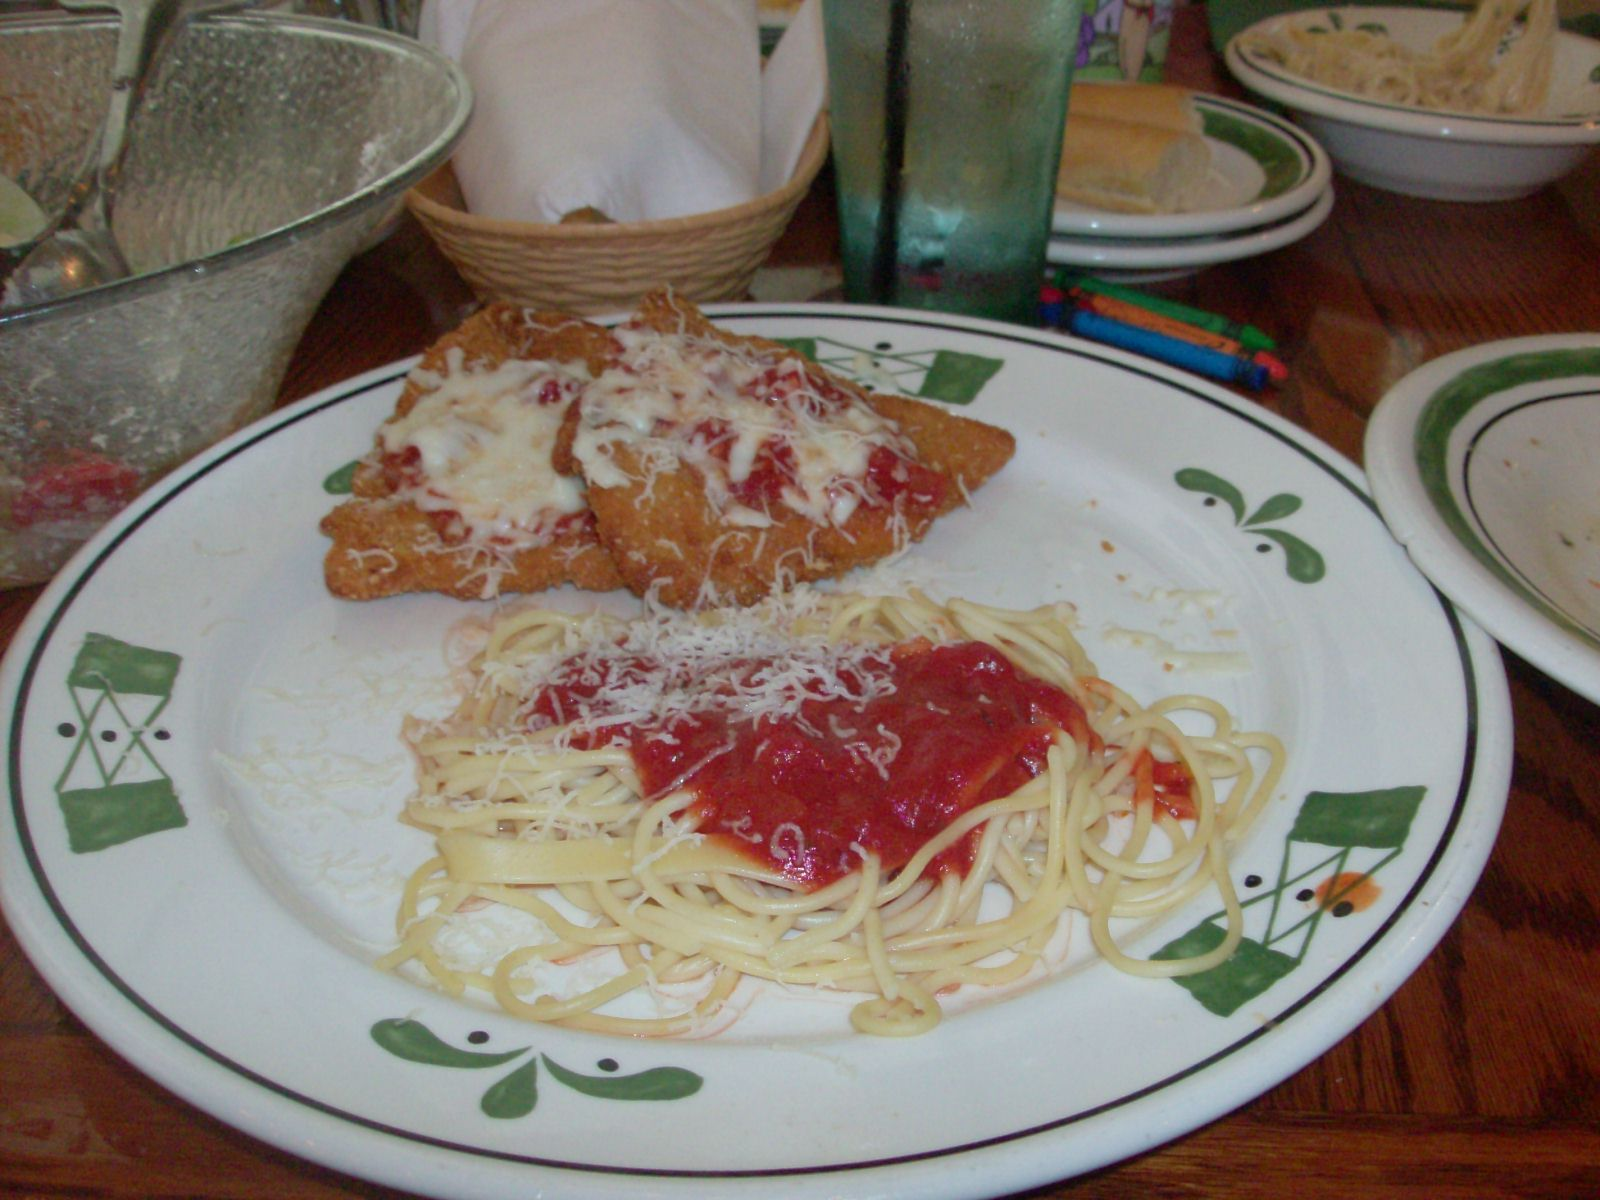 olive garden copycat recipes chicken parmigiana wasnt terrible but wasnt worth making again - Olive Garden Chicken Parmigiana